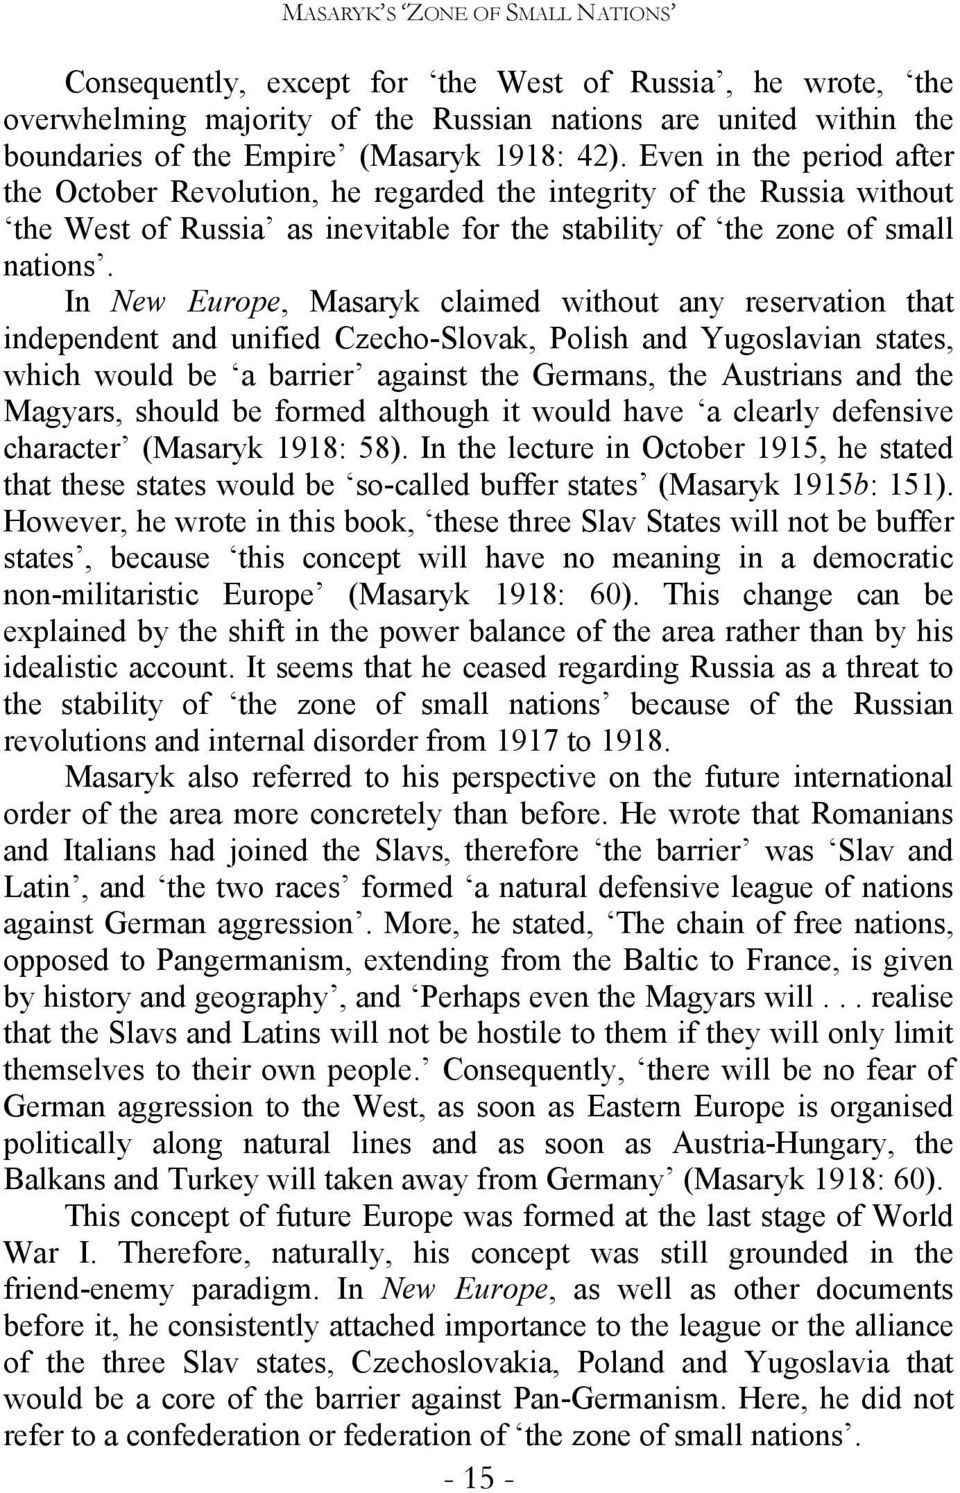 In New Europe, Masaryk claimed without any reservation that independent and unified Czecho-Slovak, Polish and Yugoslavian states, which would be a barrier against the Germans, the Austrians and the